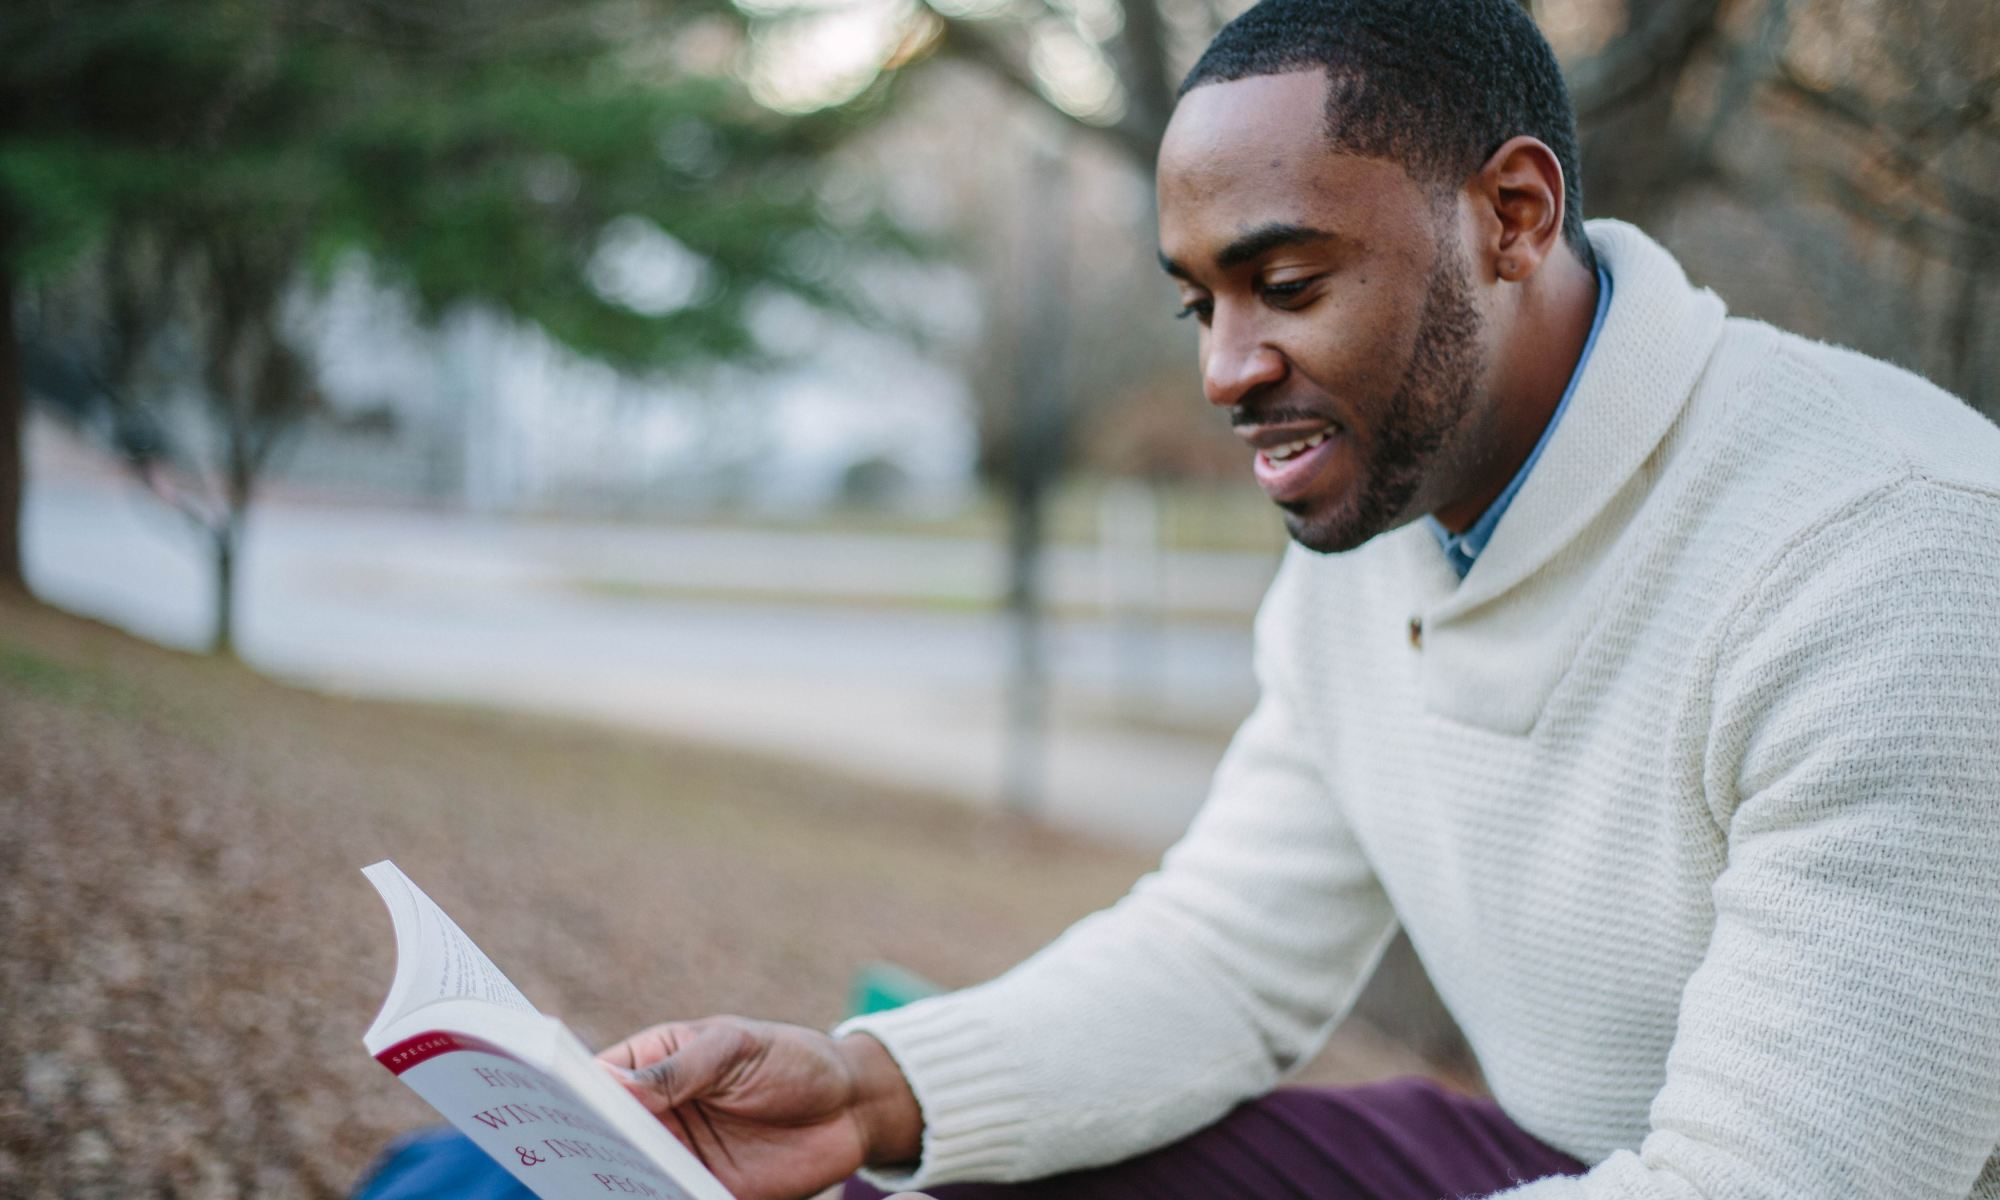 Black man wearing a white sweater while reading a book